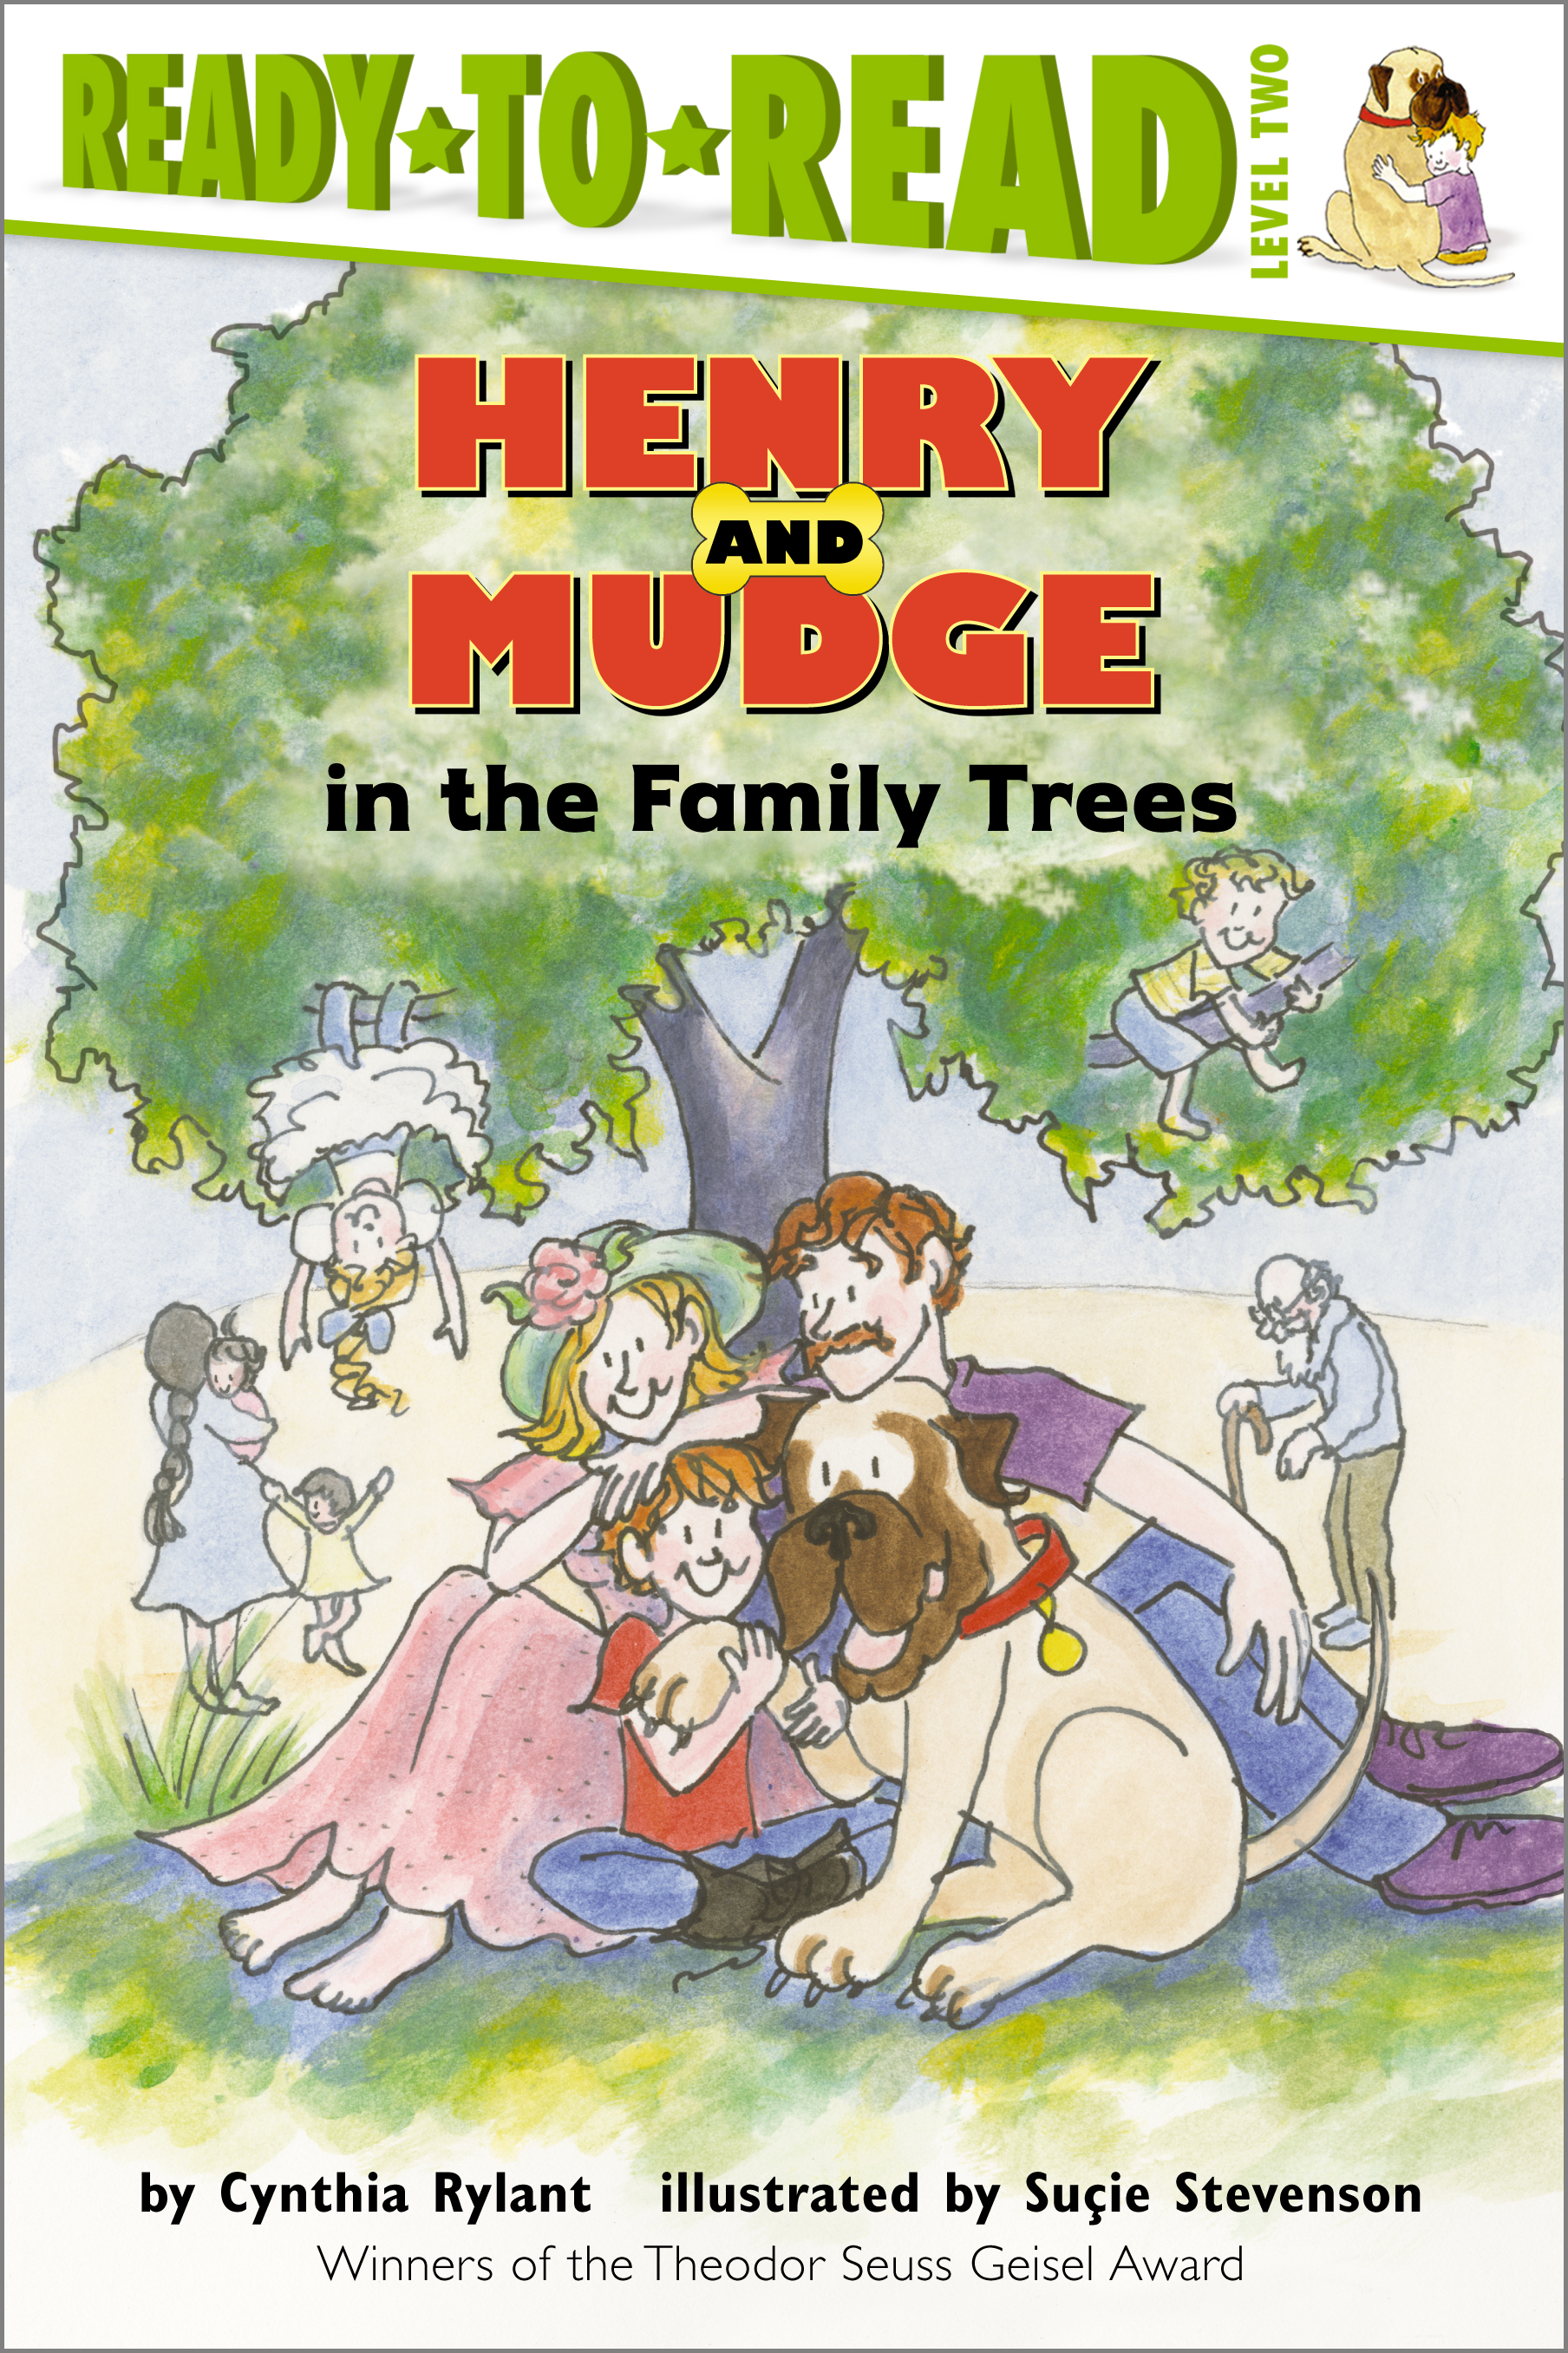 Book Cover Image (jpg): Henry And Mudge in the Family Trees